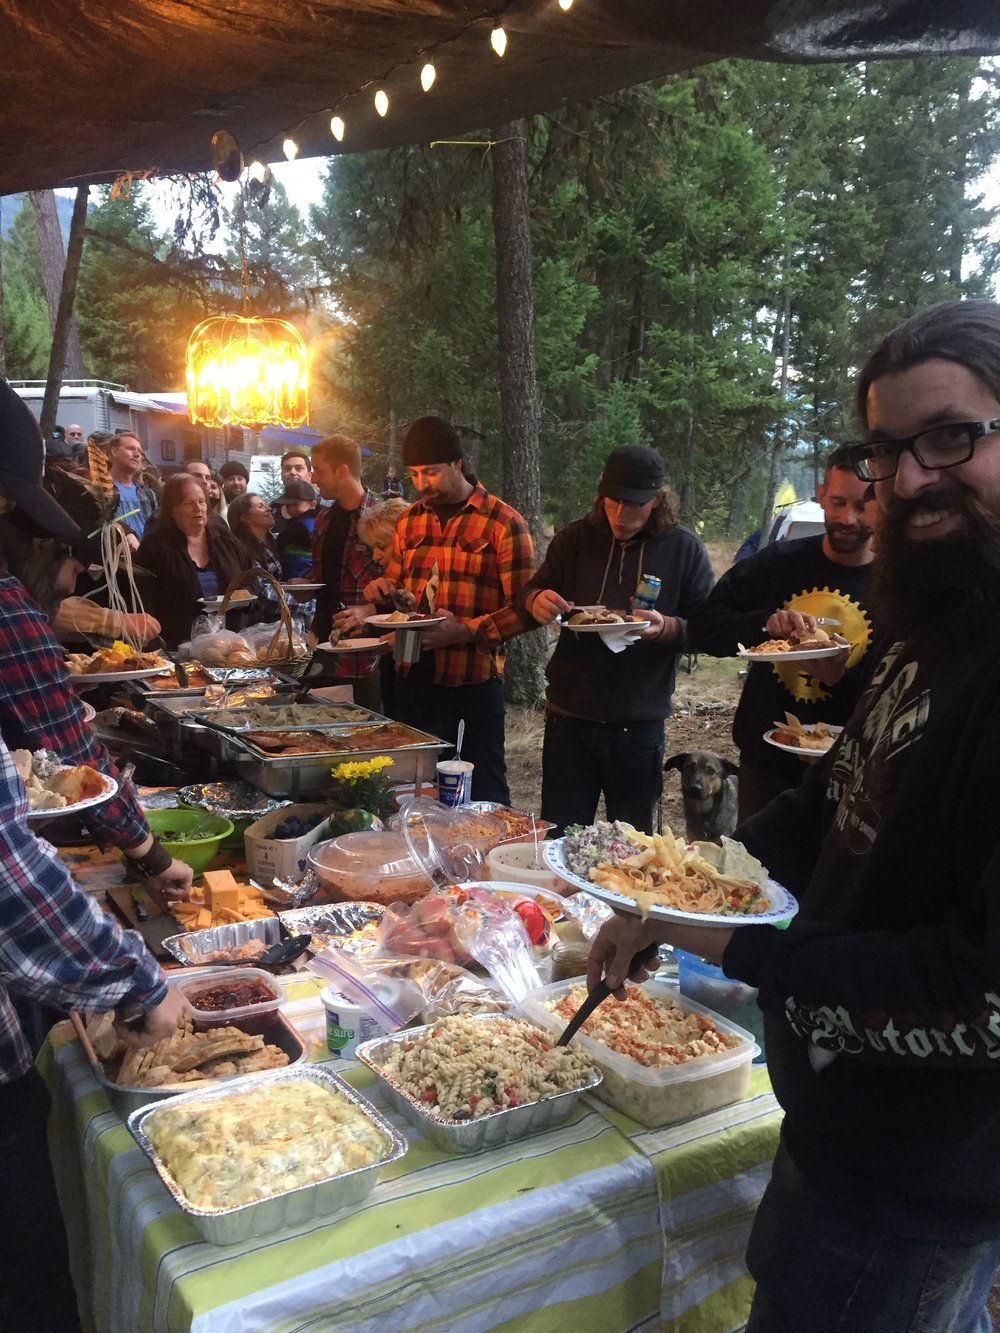 The beautiful spread at the Second Annual Amp & Camp